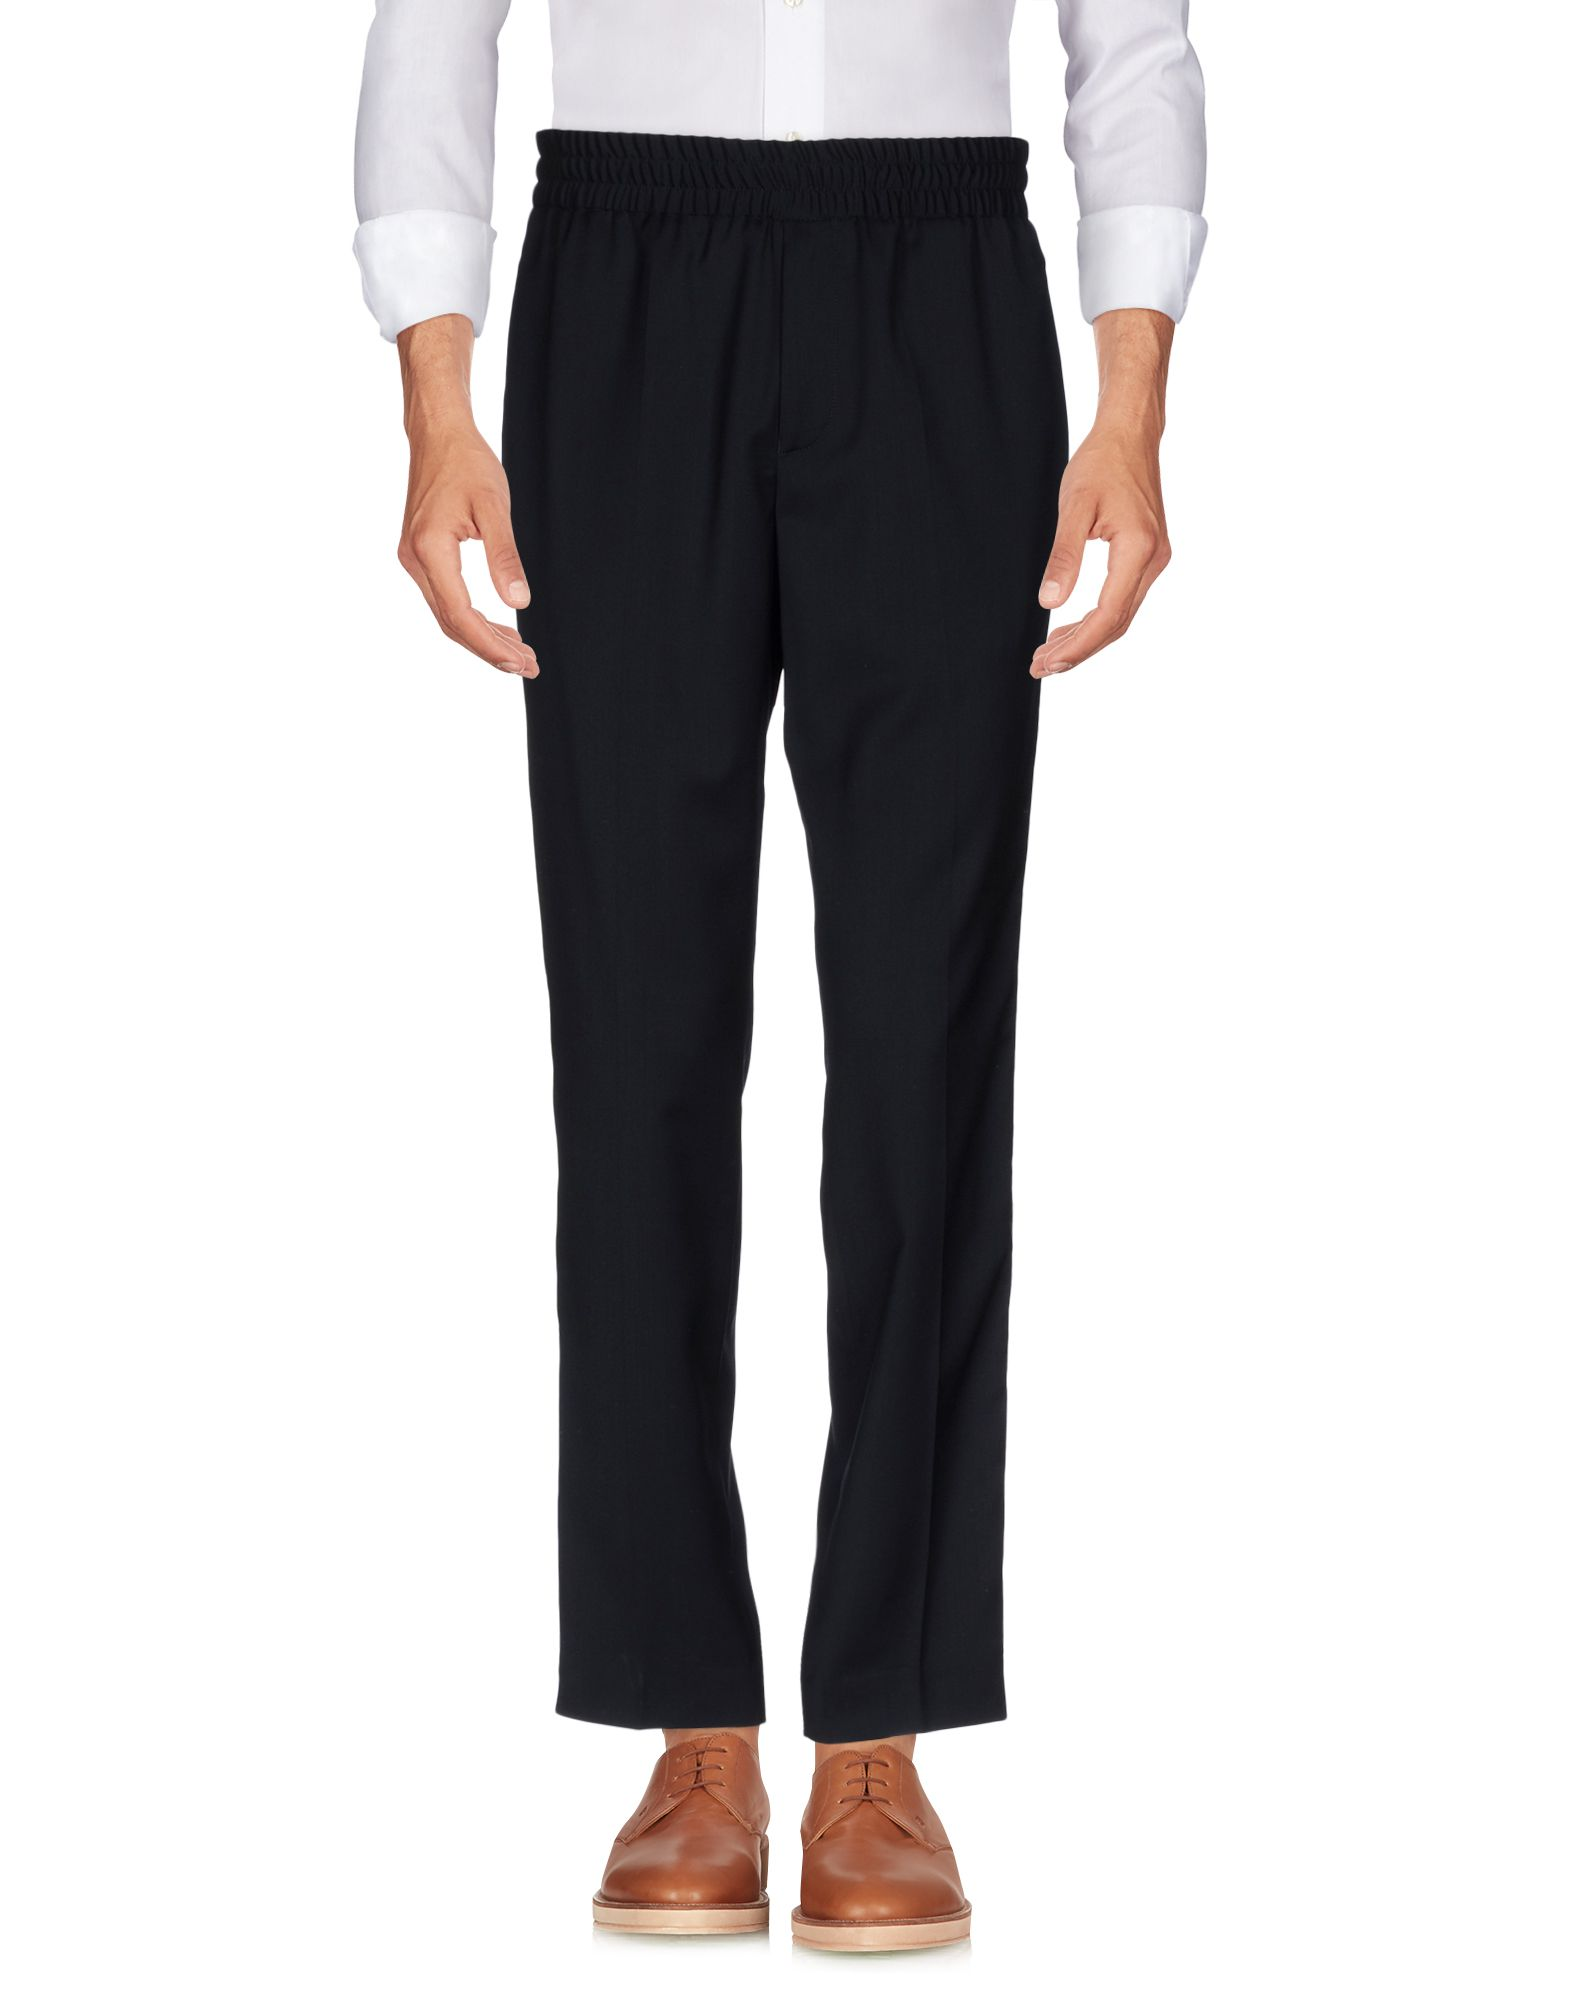 Pantalone Palm Angels Uomo - Acquista online su